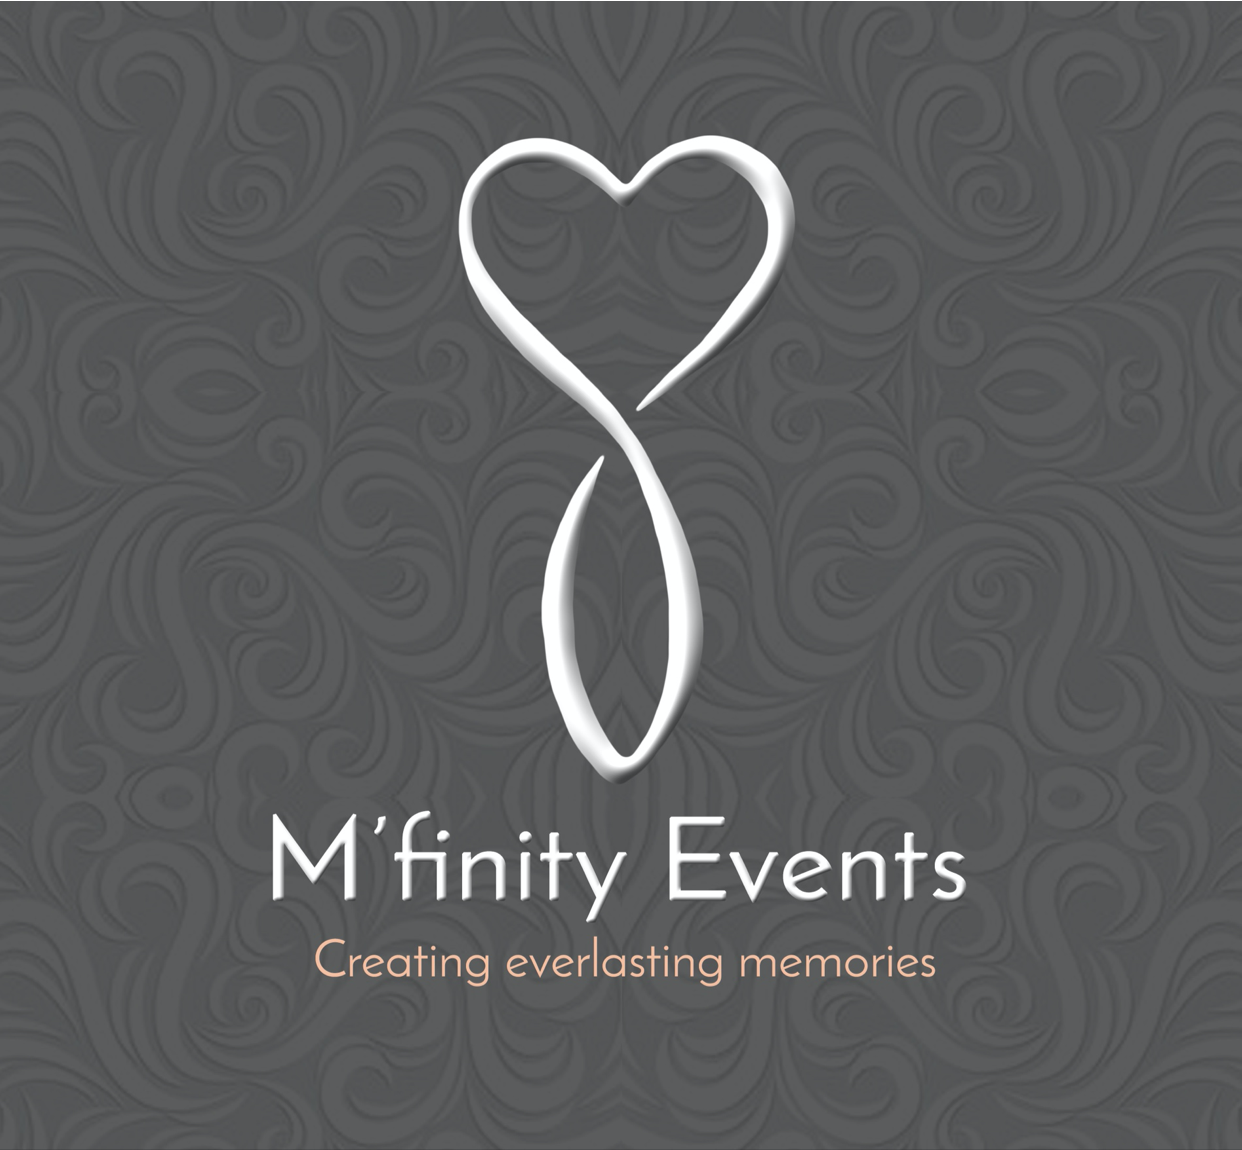 M'finity Events